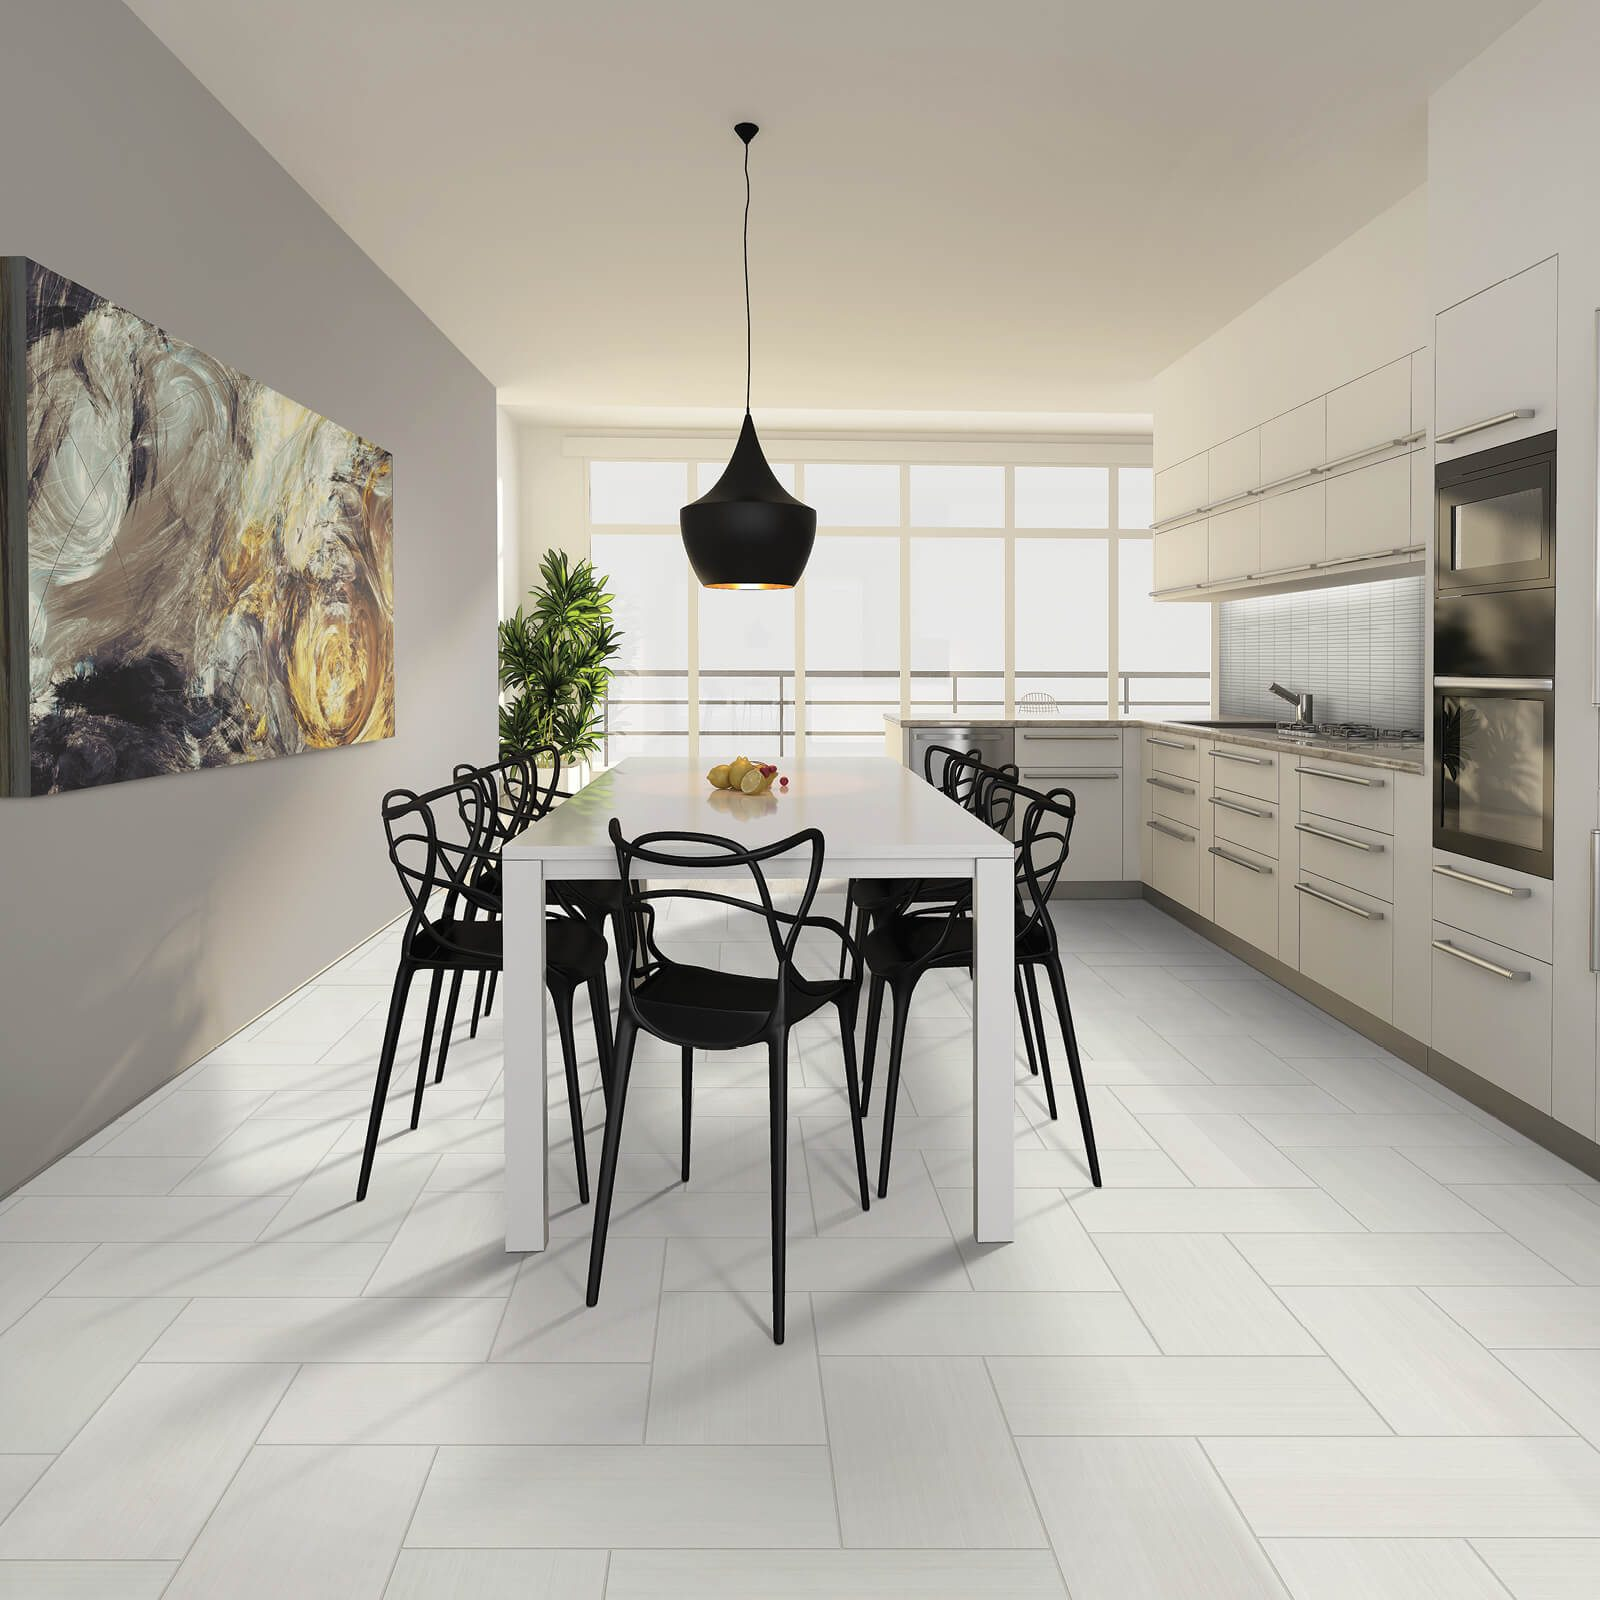 white tile in kitchen | All Floors Design Centre